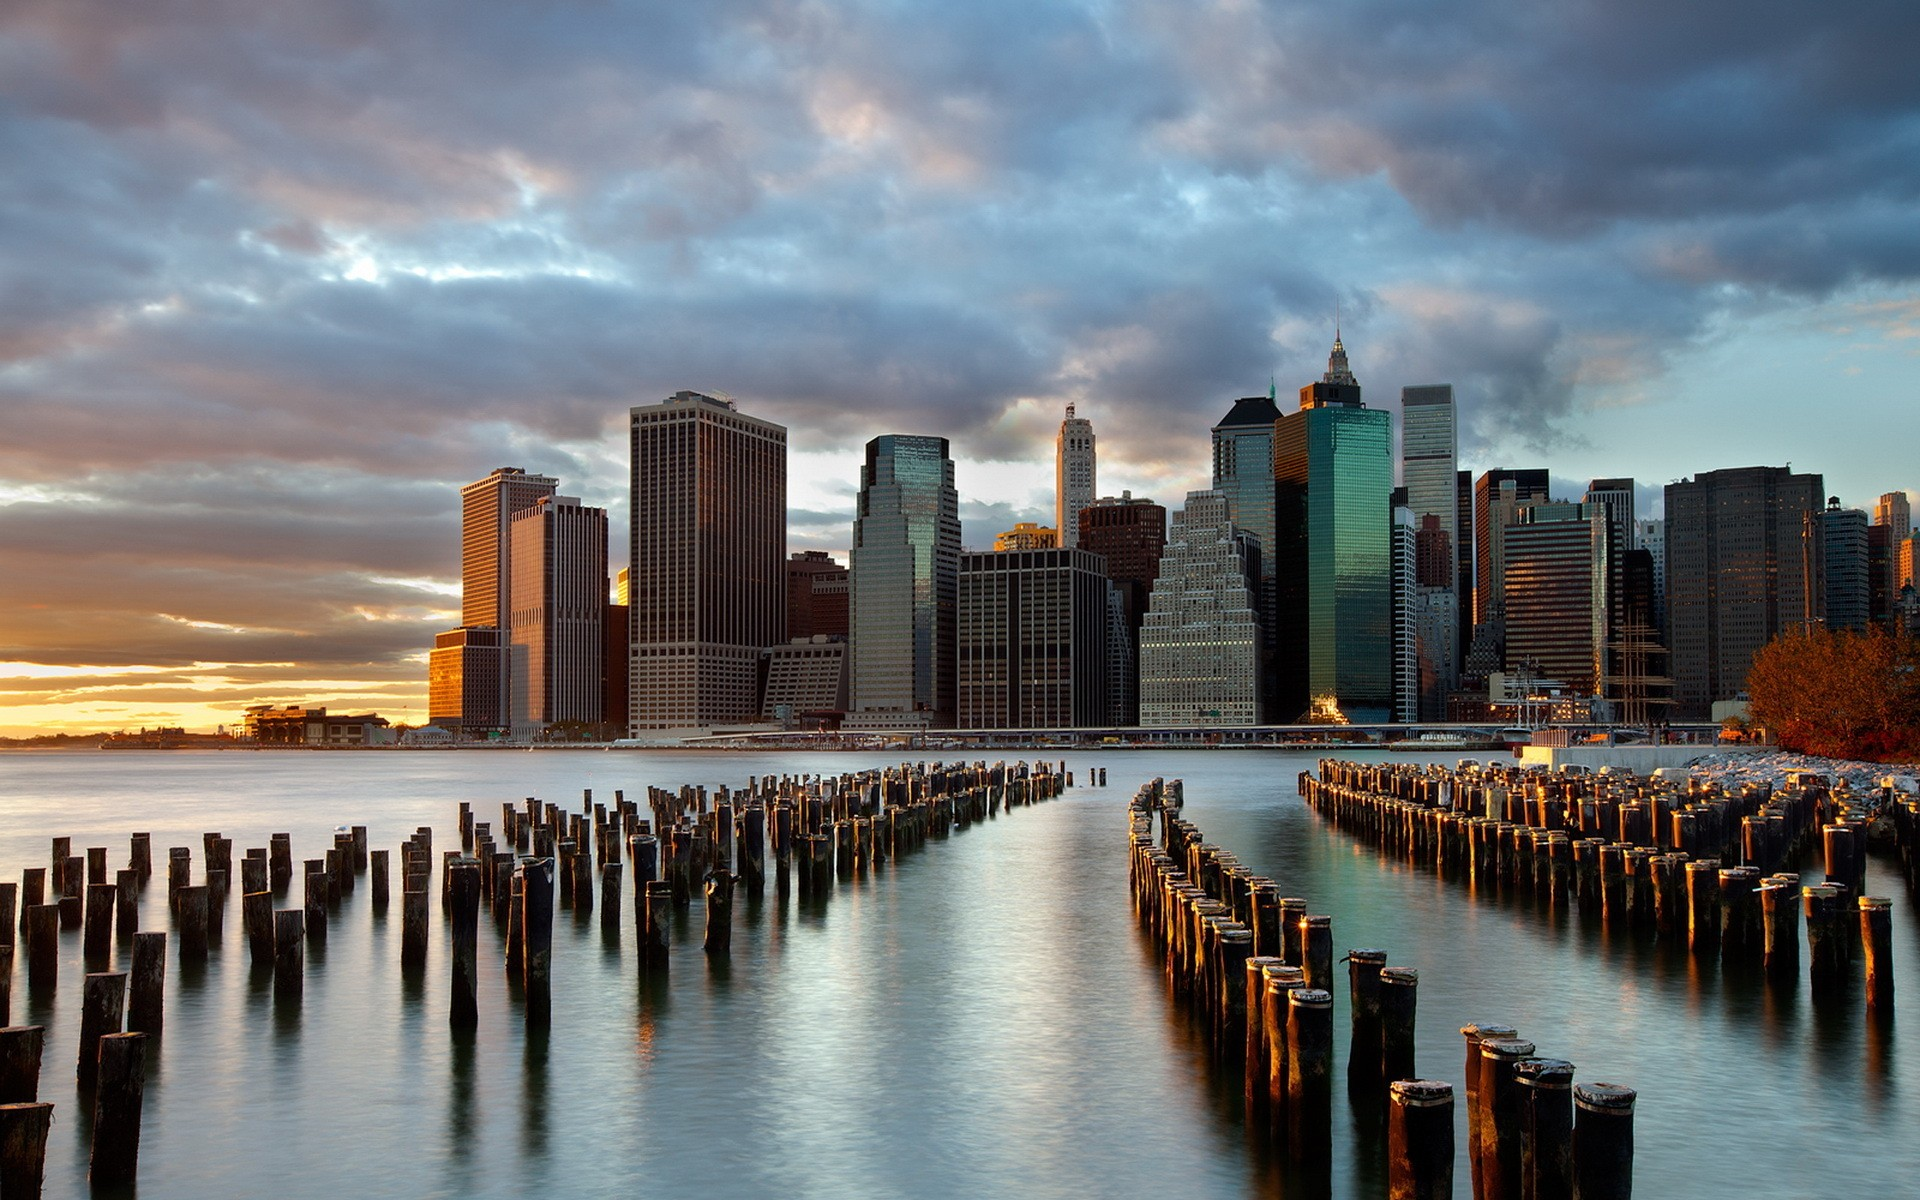 Sunset Cityscapes Skylines New York City Manhattan Skyscrapers East River Wallpaper 1920x1200 19740 Wallpaperup